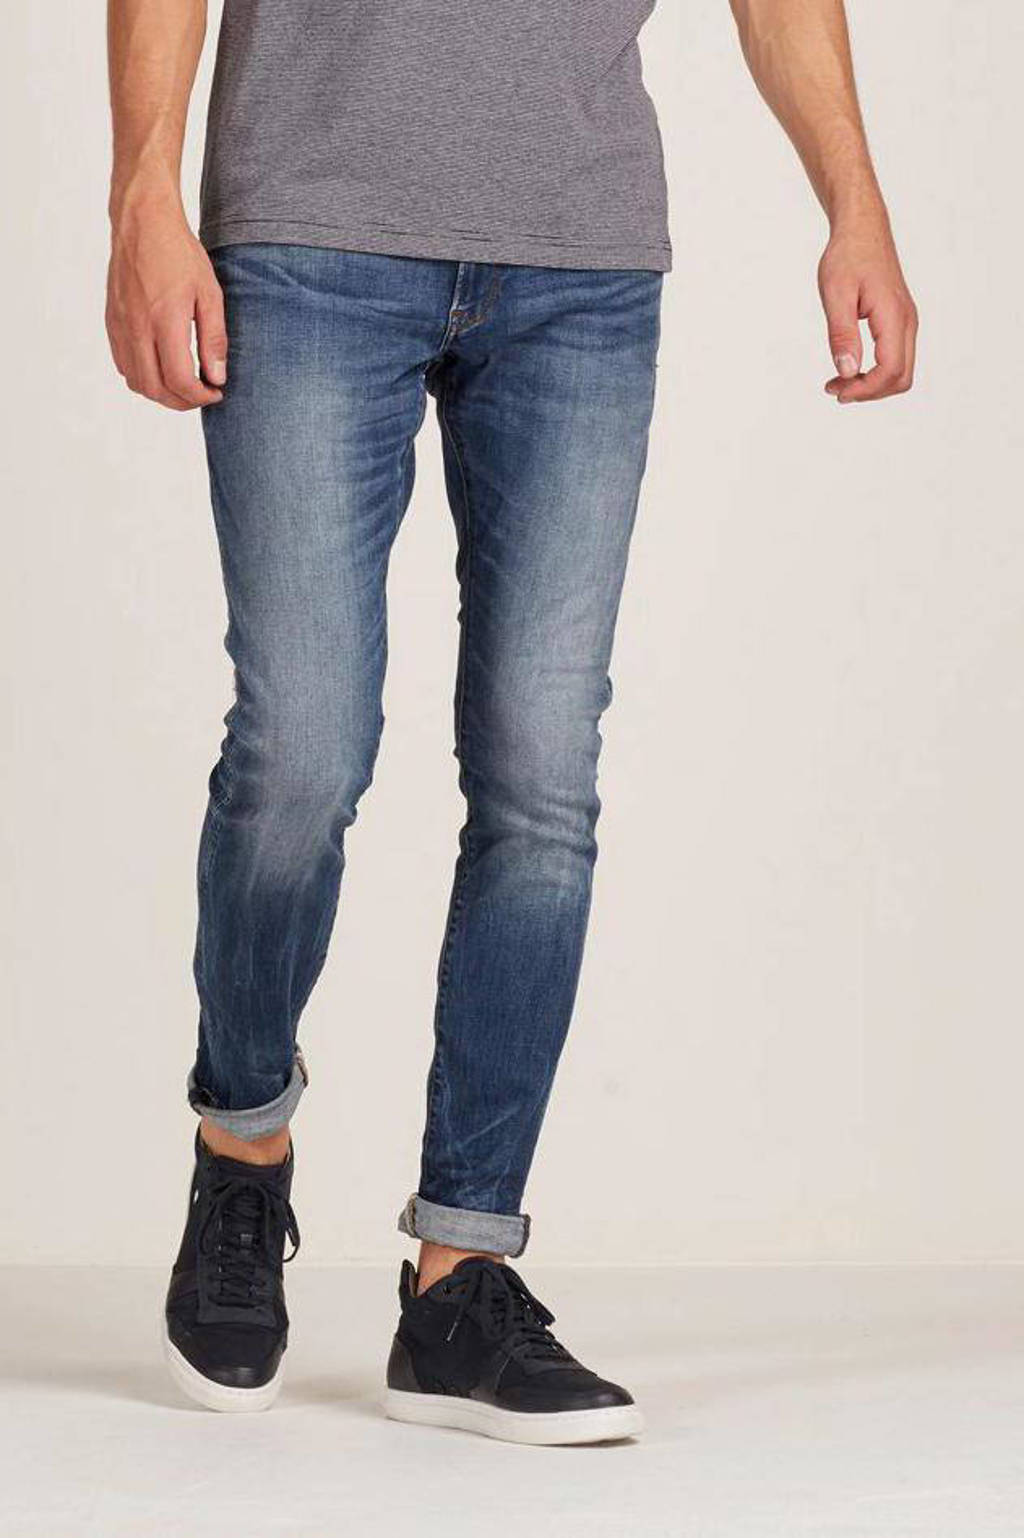 G-Star RAW skinny fit jeans 3301 deconstructed medium indigo aged, Medium indigo aged